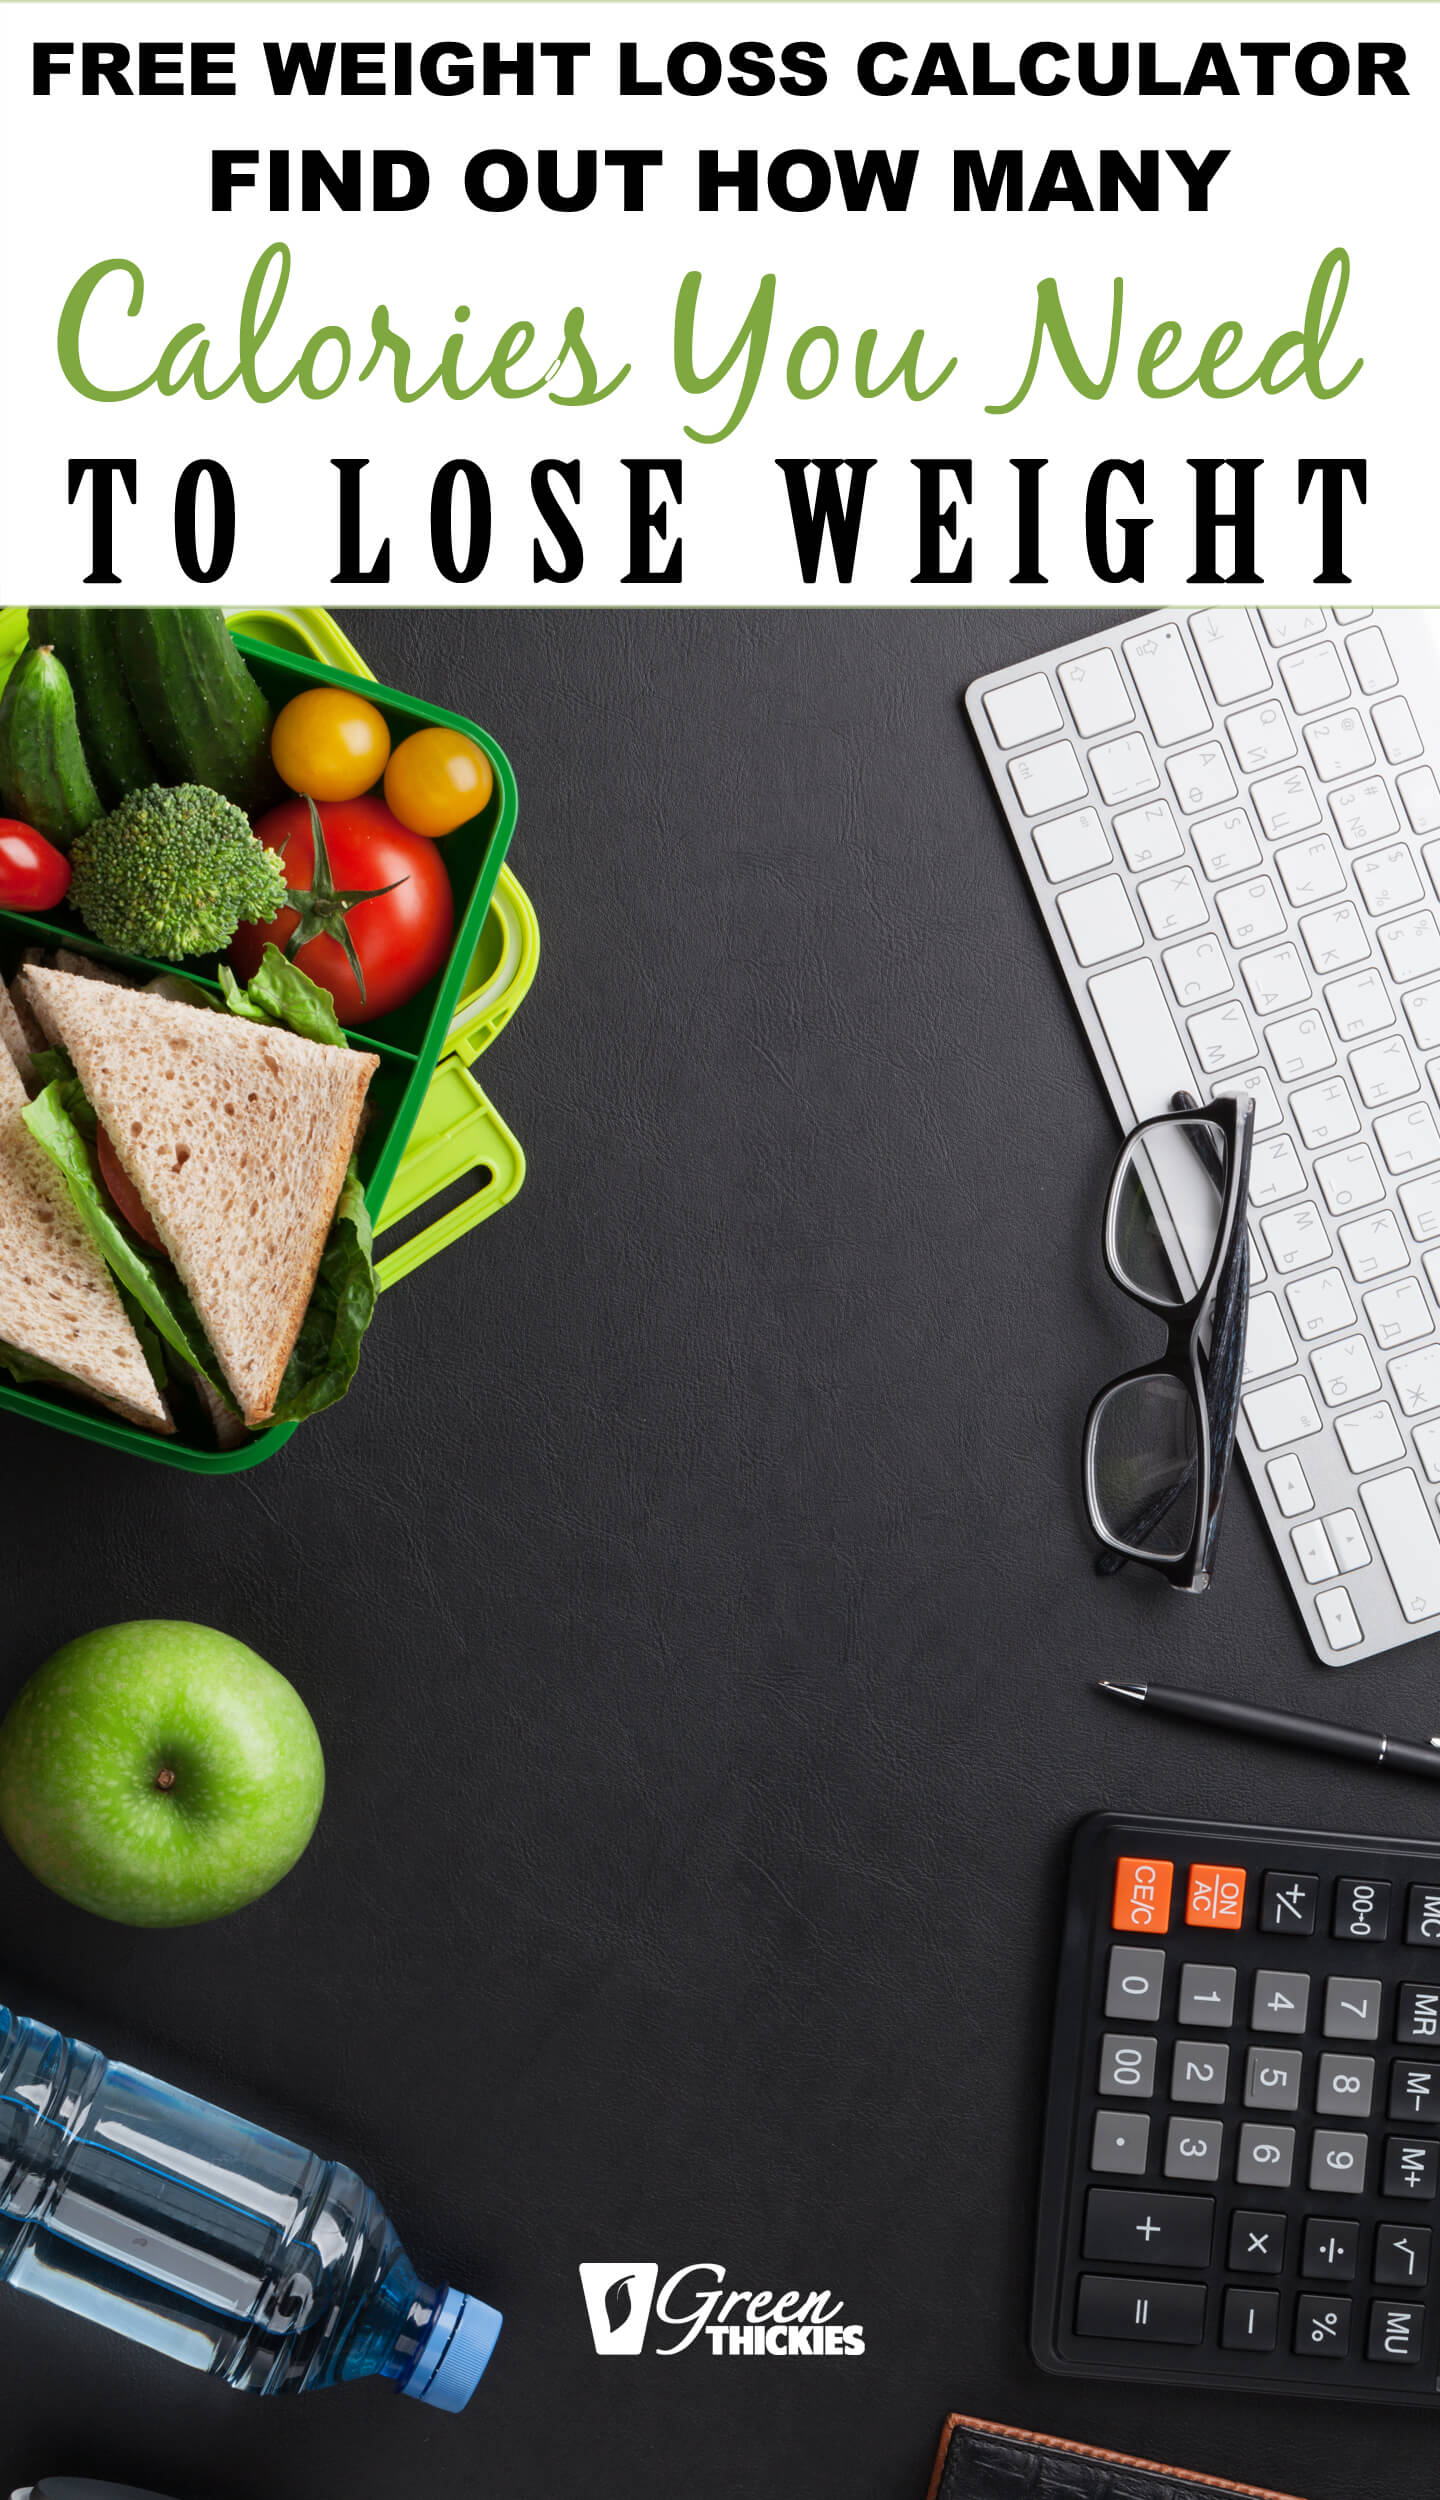 This free weight loss calorie calculator will show you how many calories you need to eat to lose weight. The secret to losing weight is...#greenthickies #weightloss #caloriecalculator